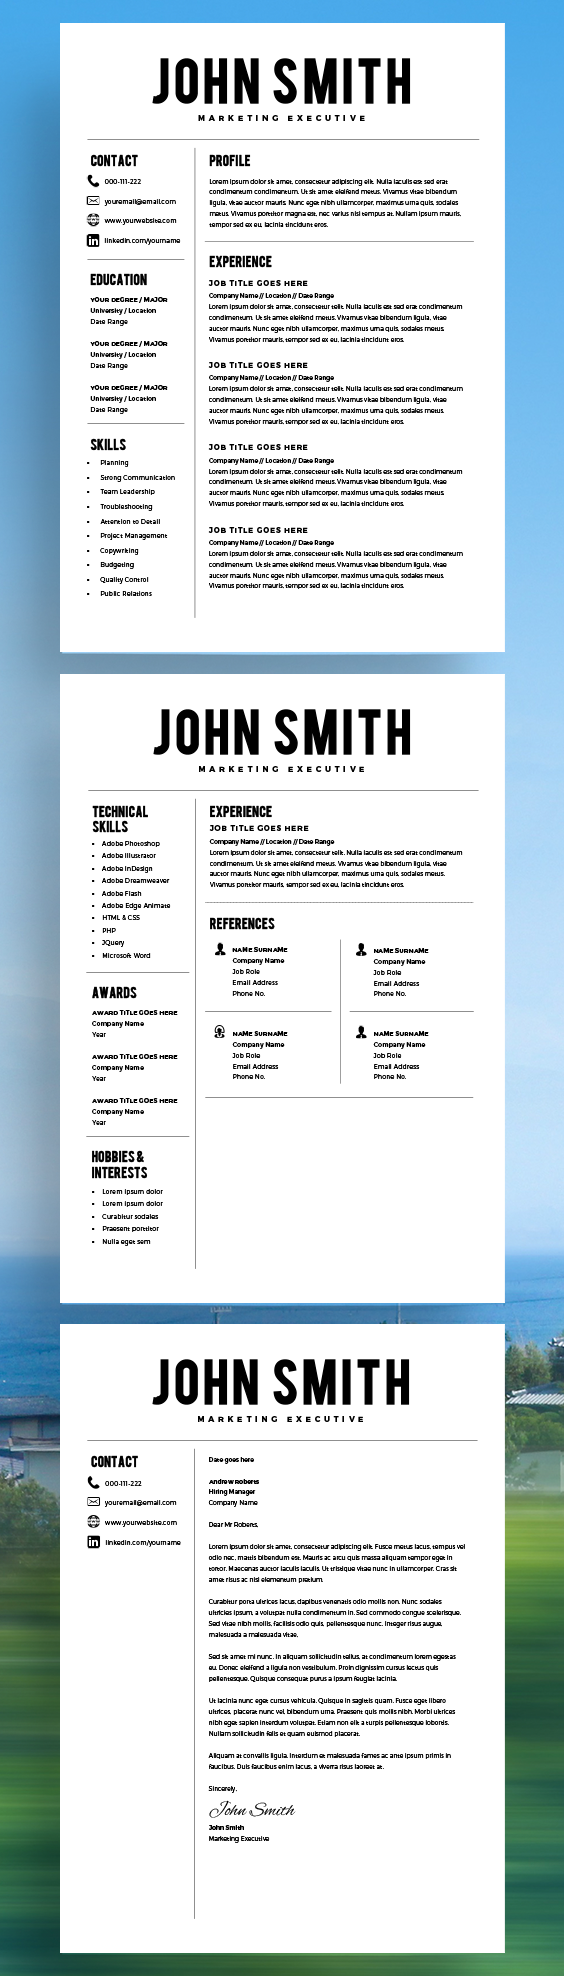 Resume Template - Resume Builder - CV Template + Cover Letter - MS ...